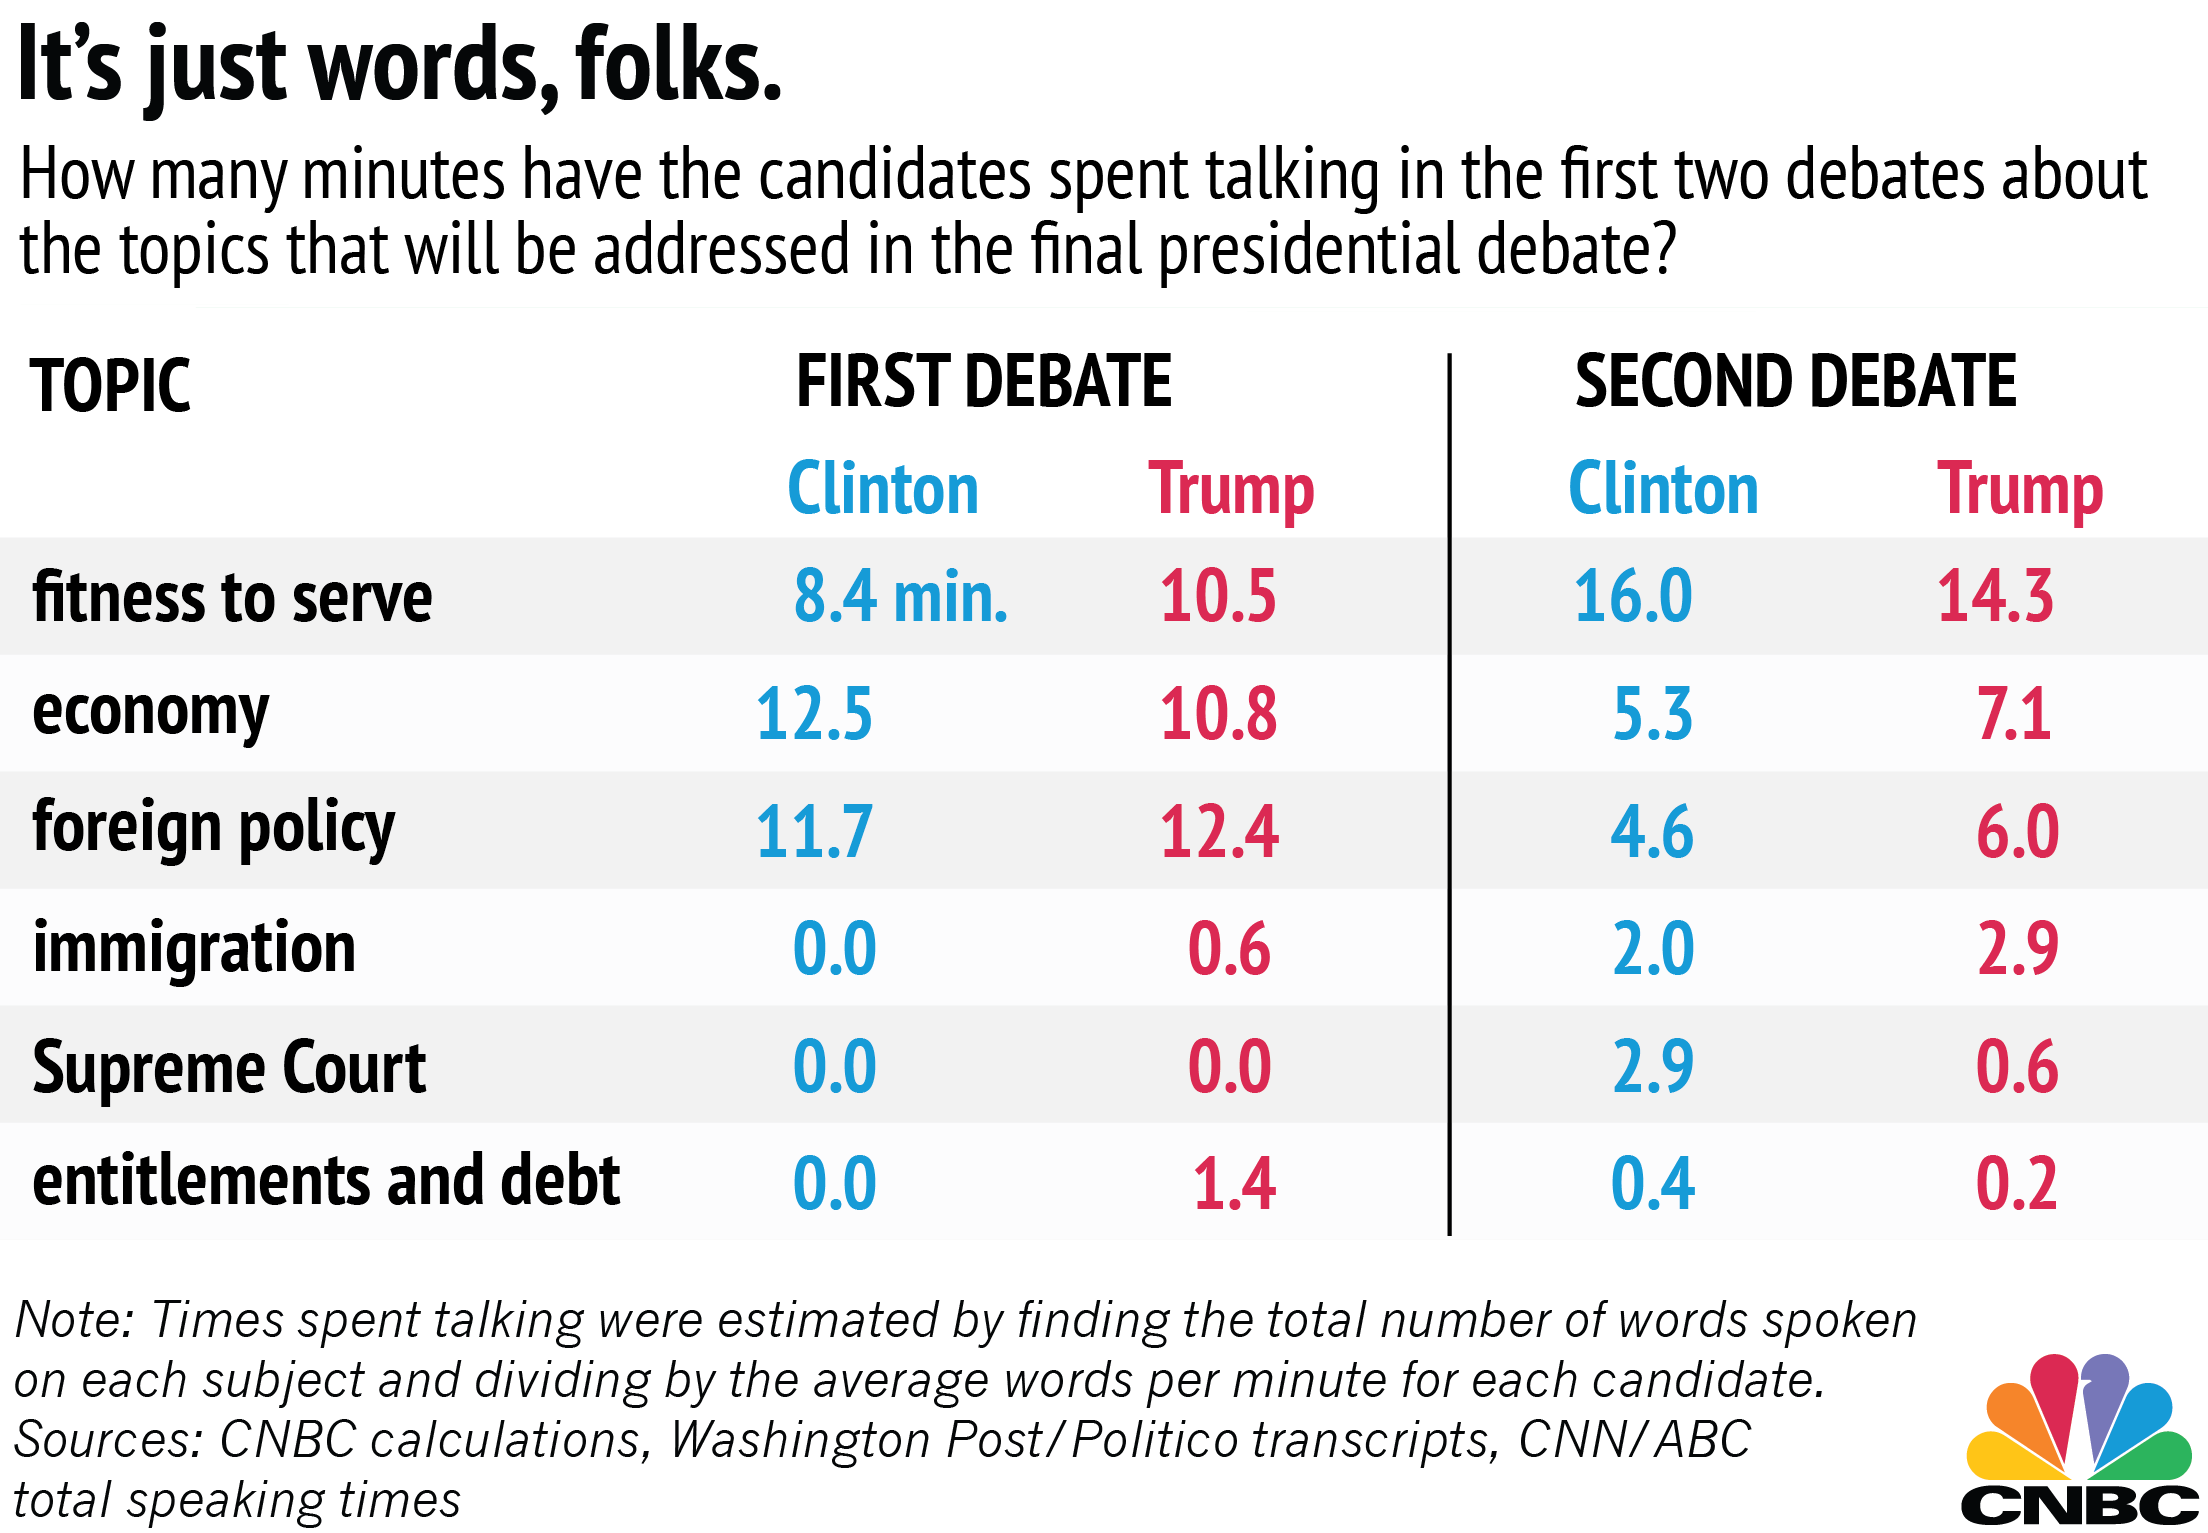 an analysis of the third debate What happened during the third presidential debate cenk uygur, john iadarola, and jimmy dore, hosts of the young turks, discuss the third presidential debat.